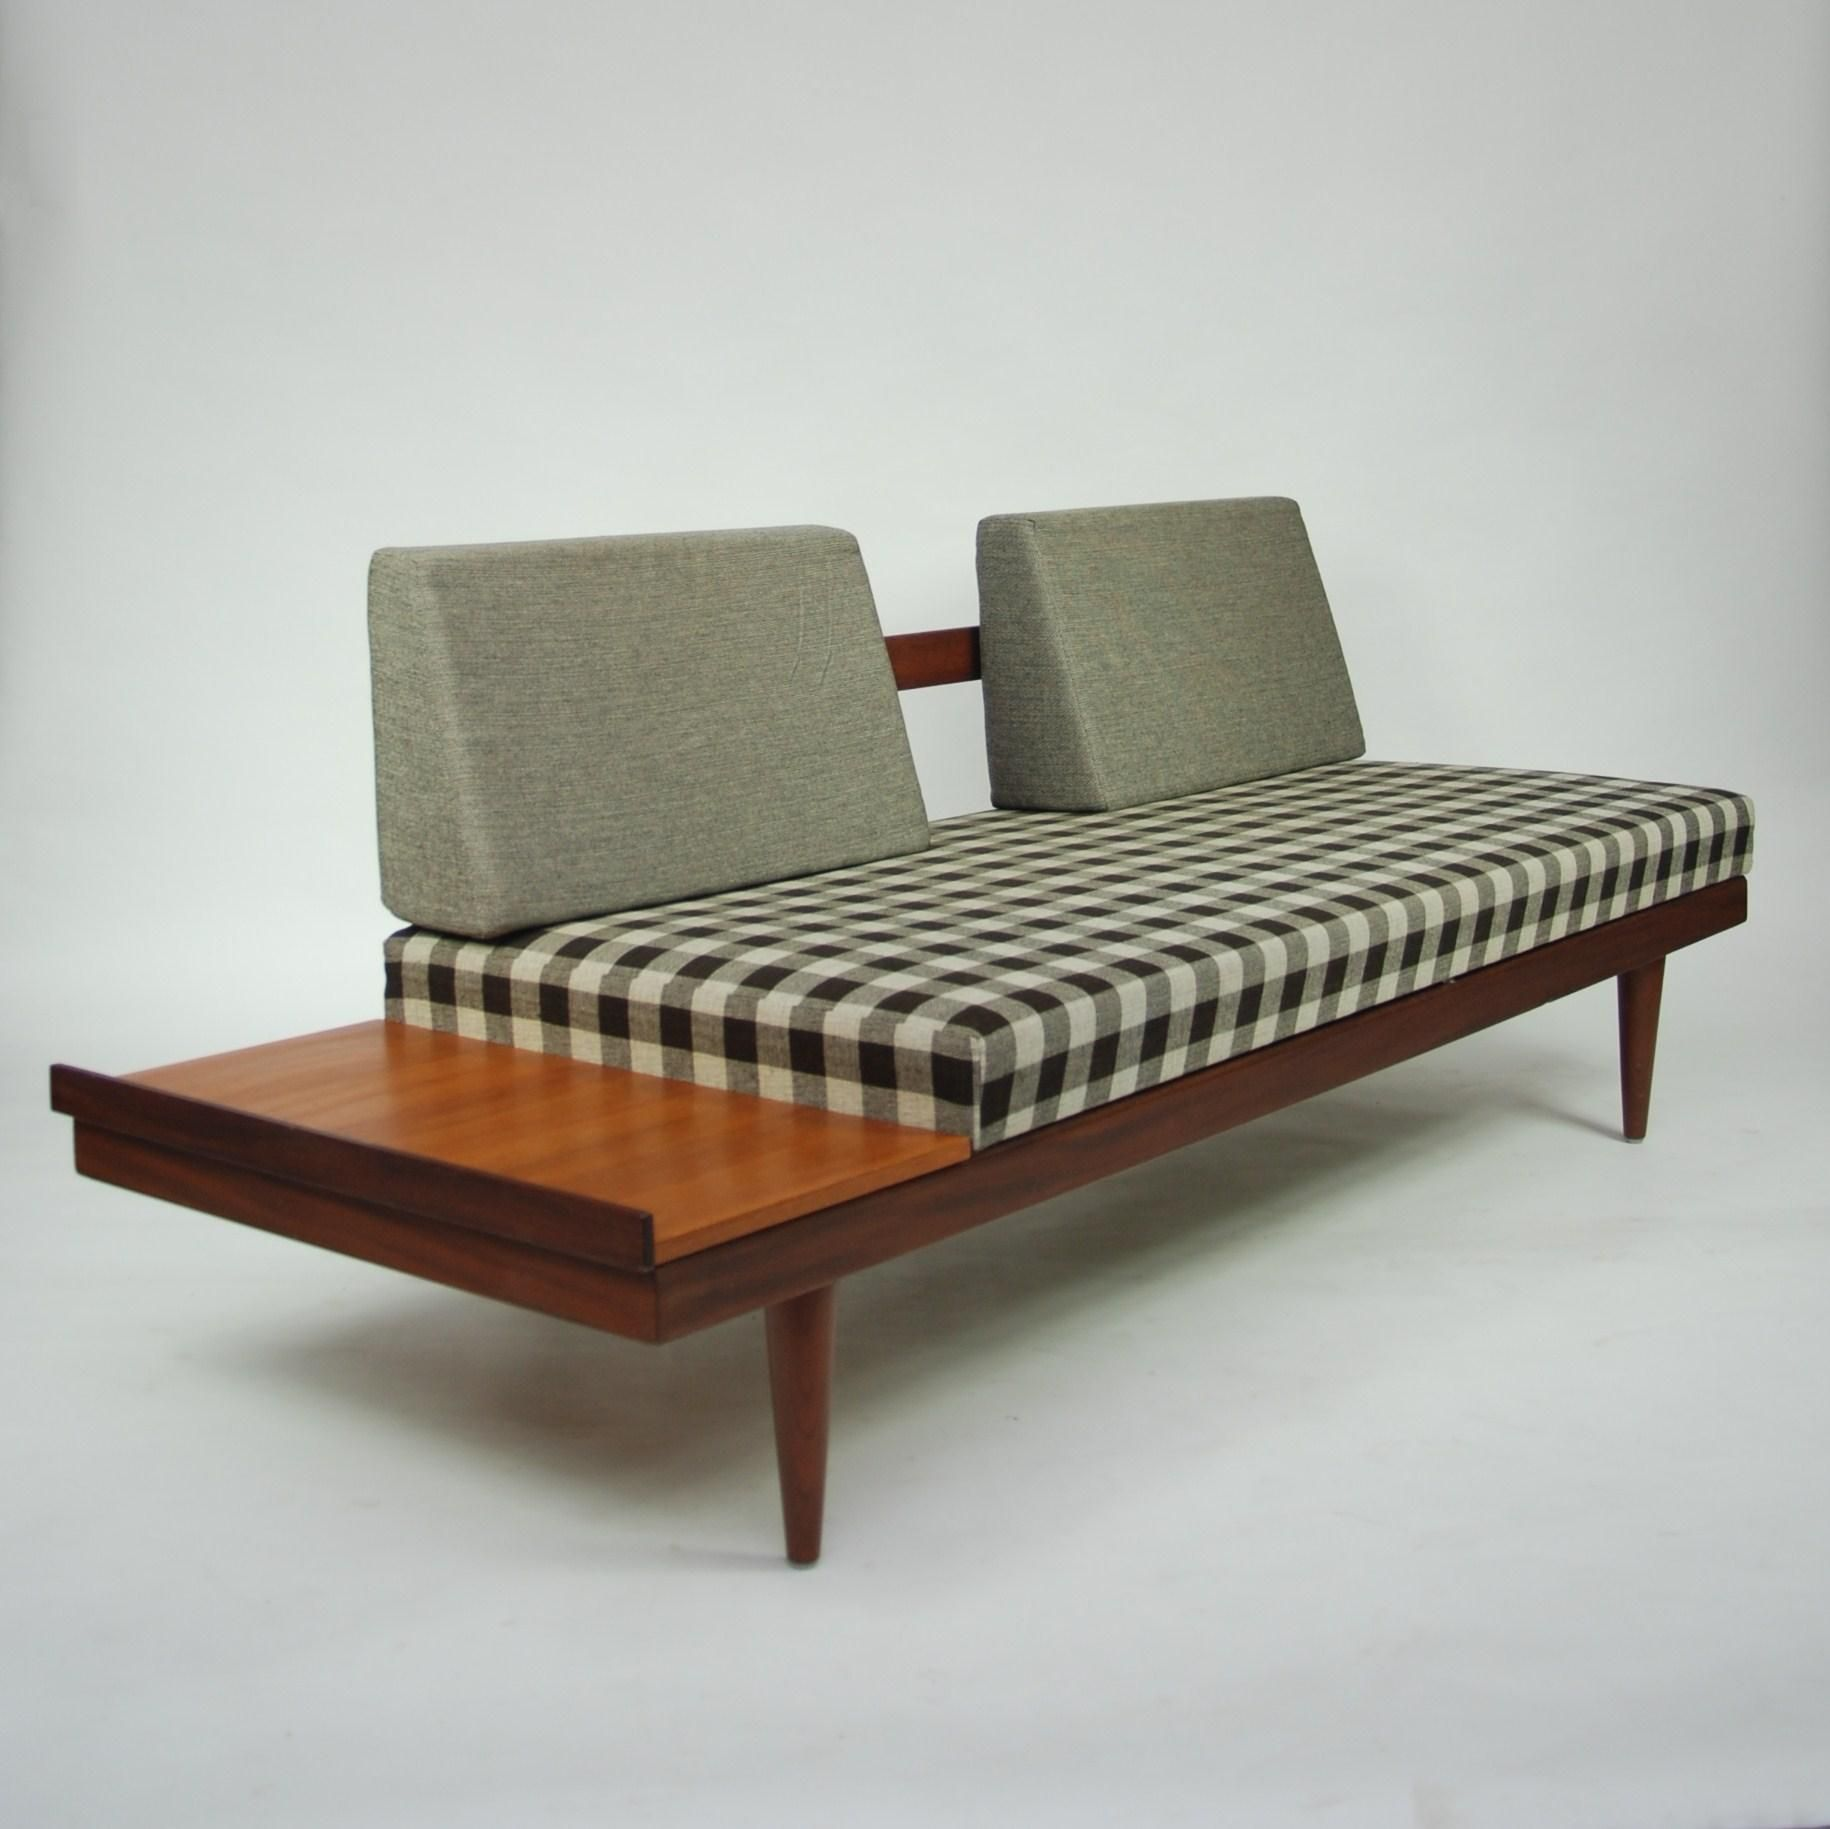 Vintage Cheap Furniture: Anonymous; Teak Daybed, 1960s.